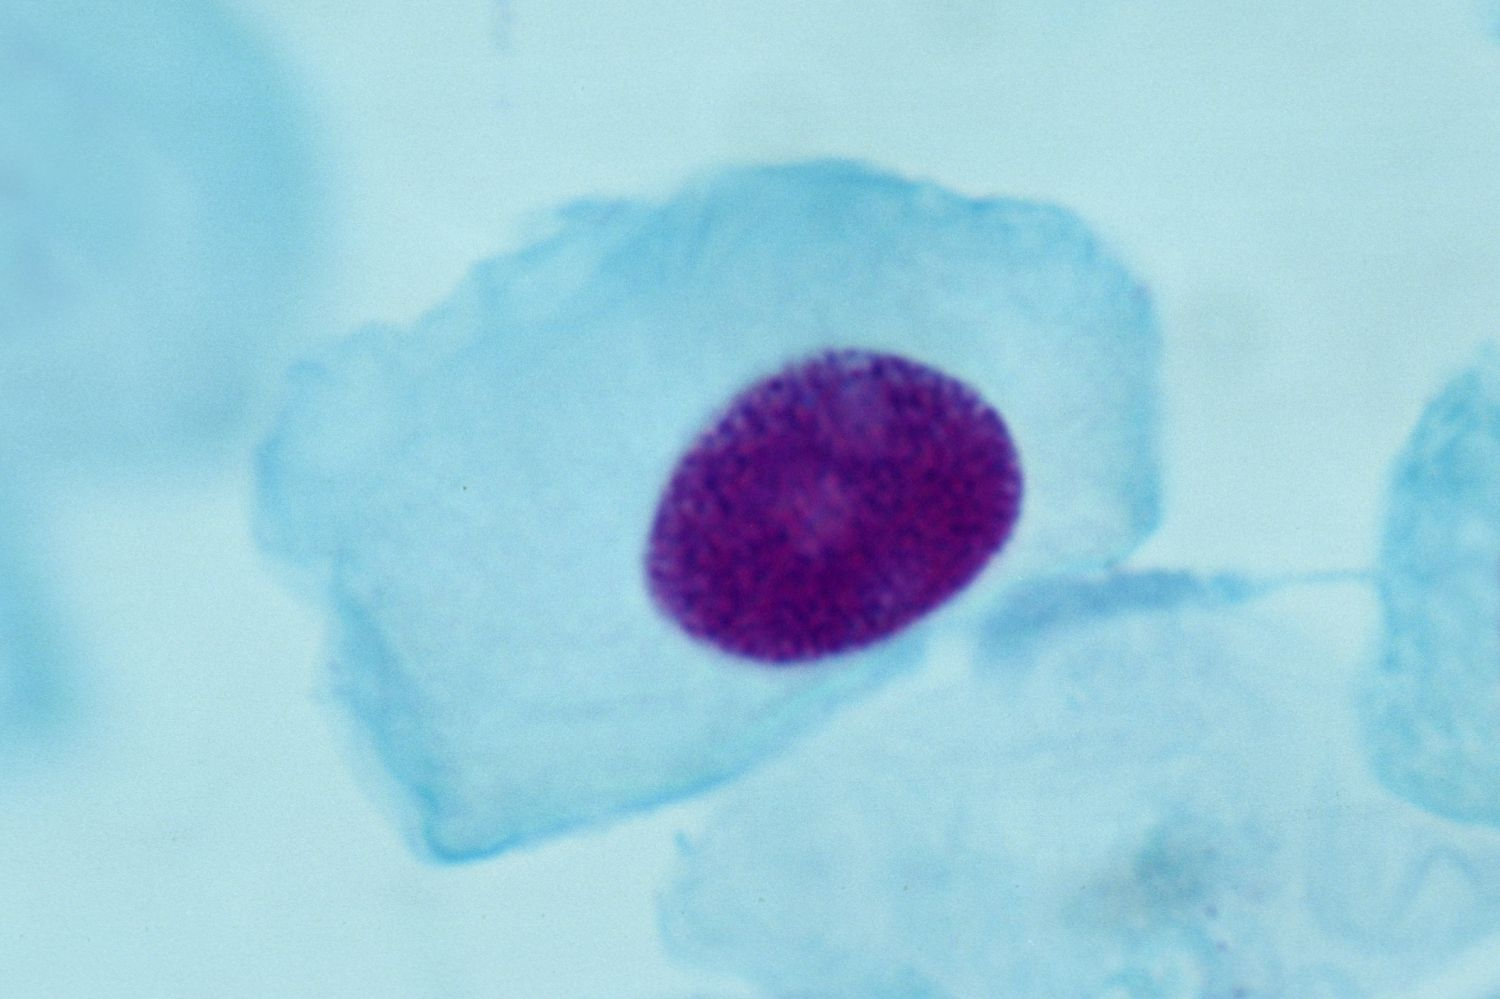 A plant cell in Interphase